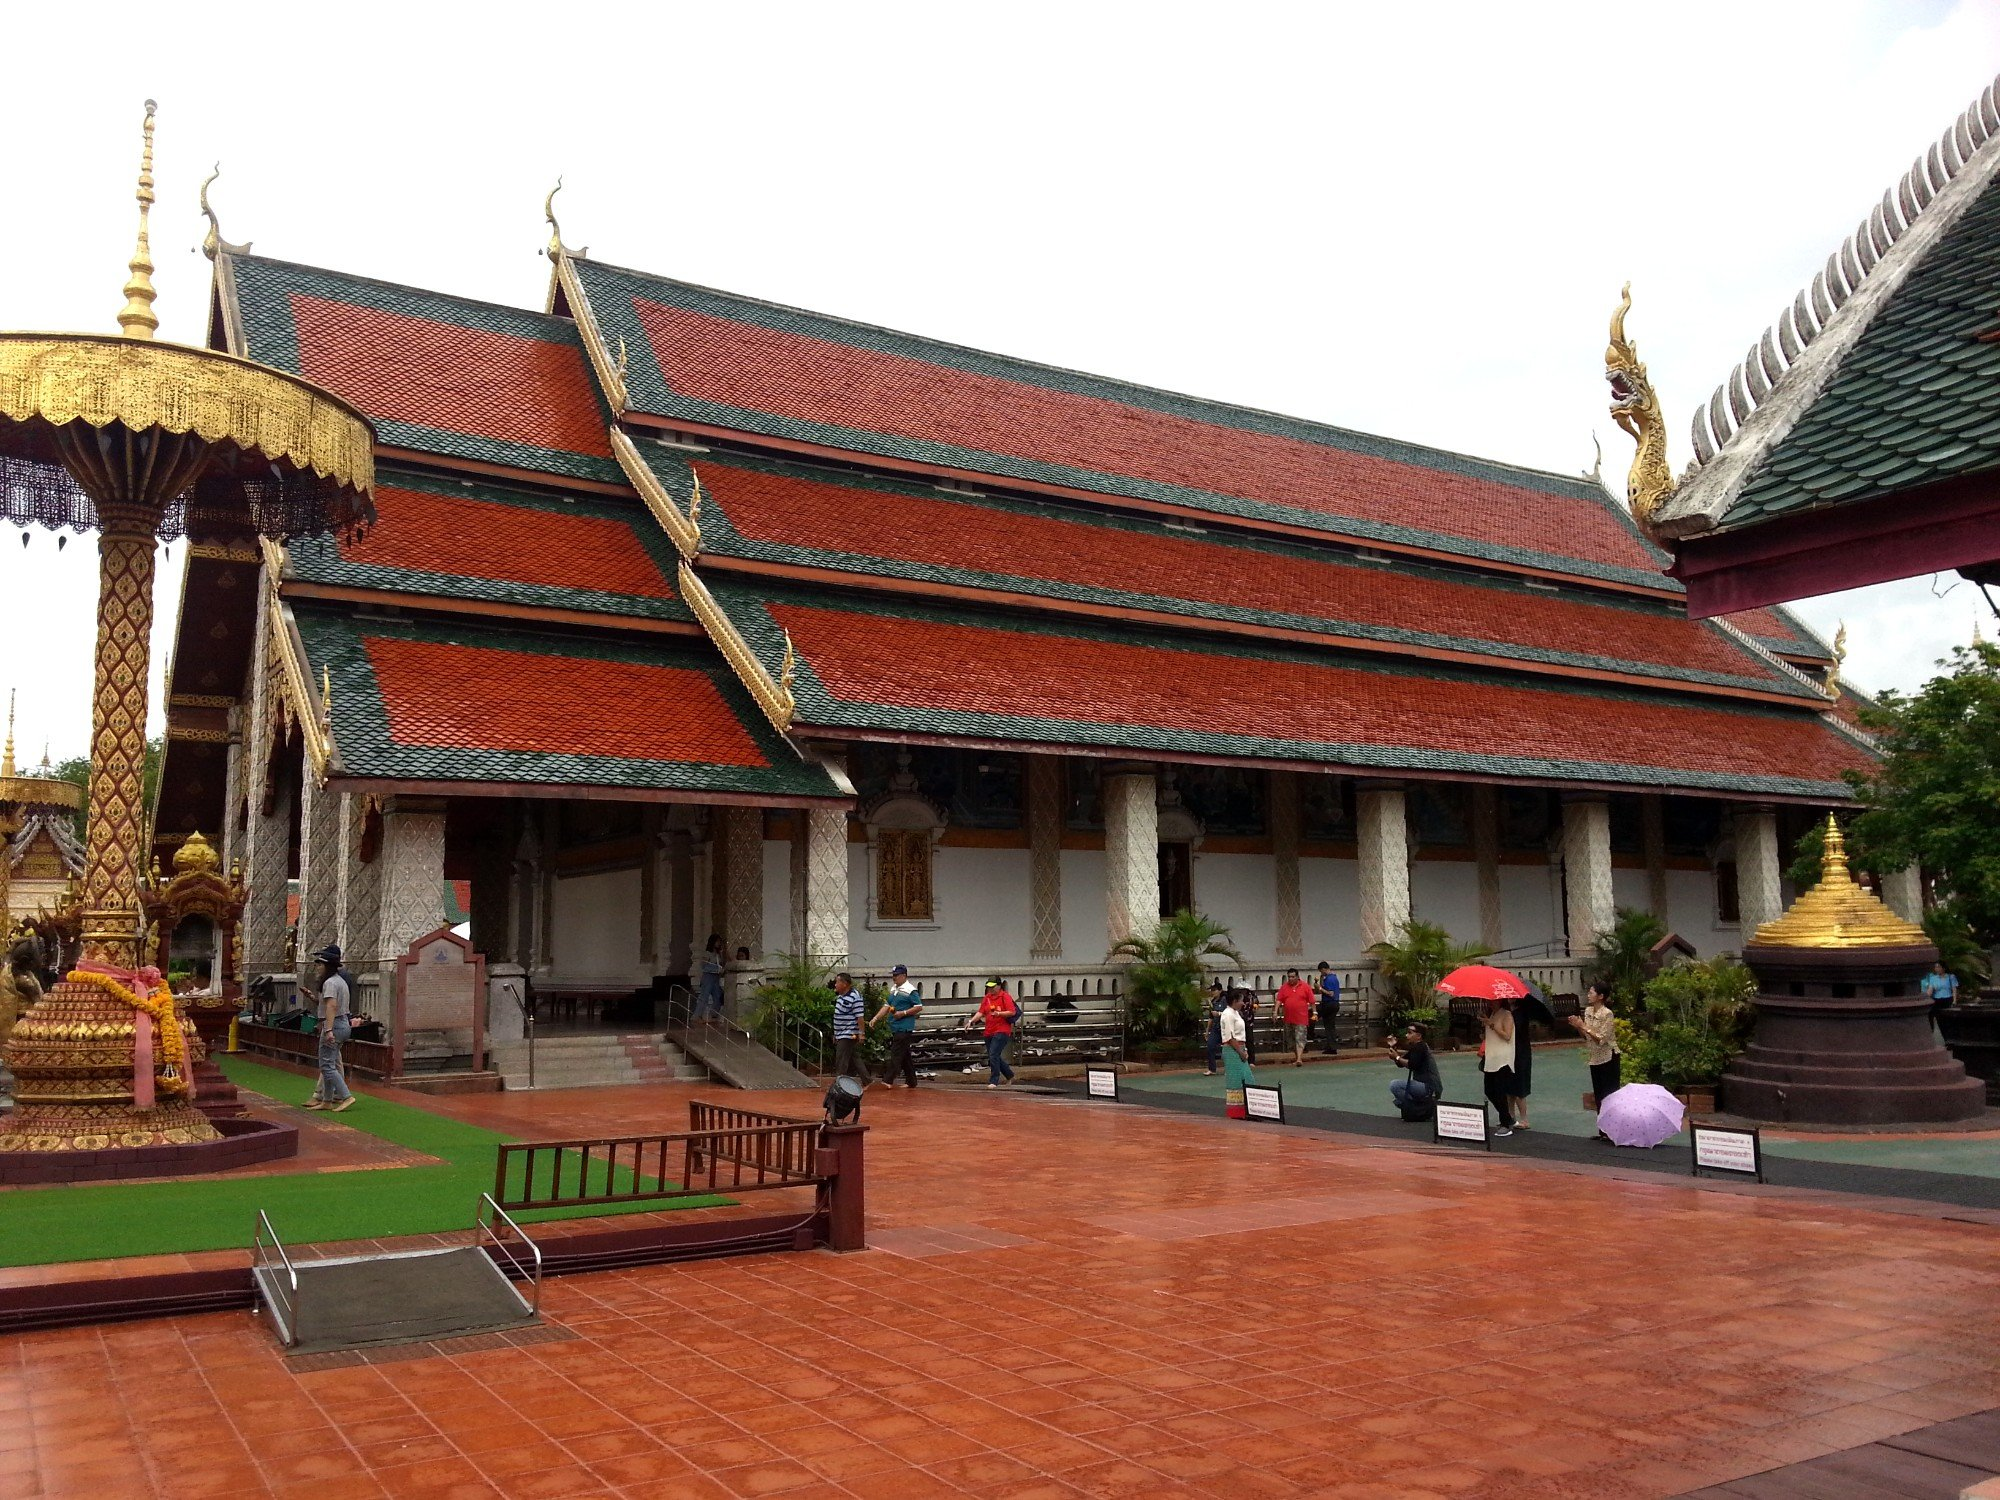 Main assembly hall at Wat Phra That Hariphunchai